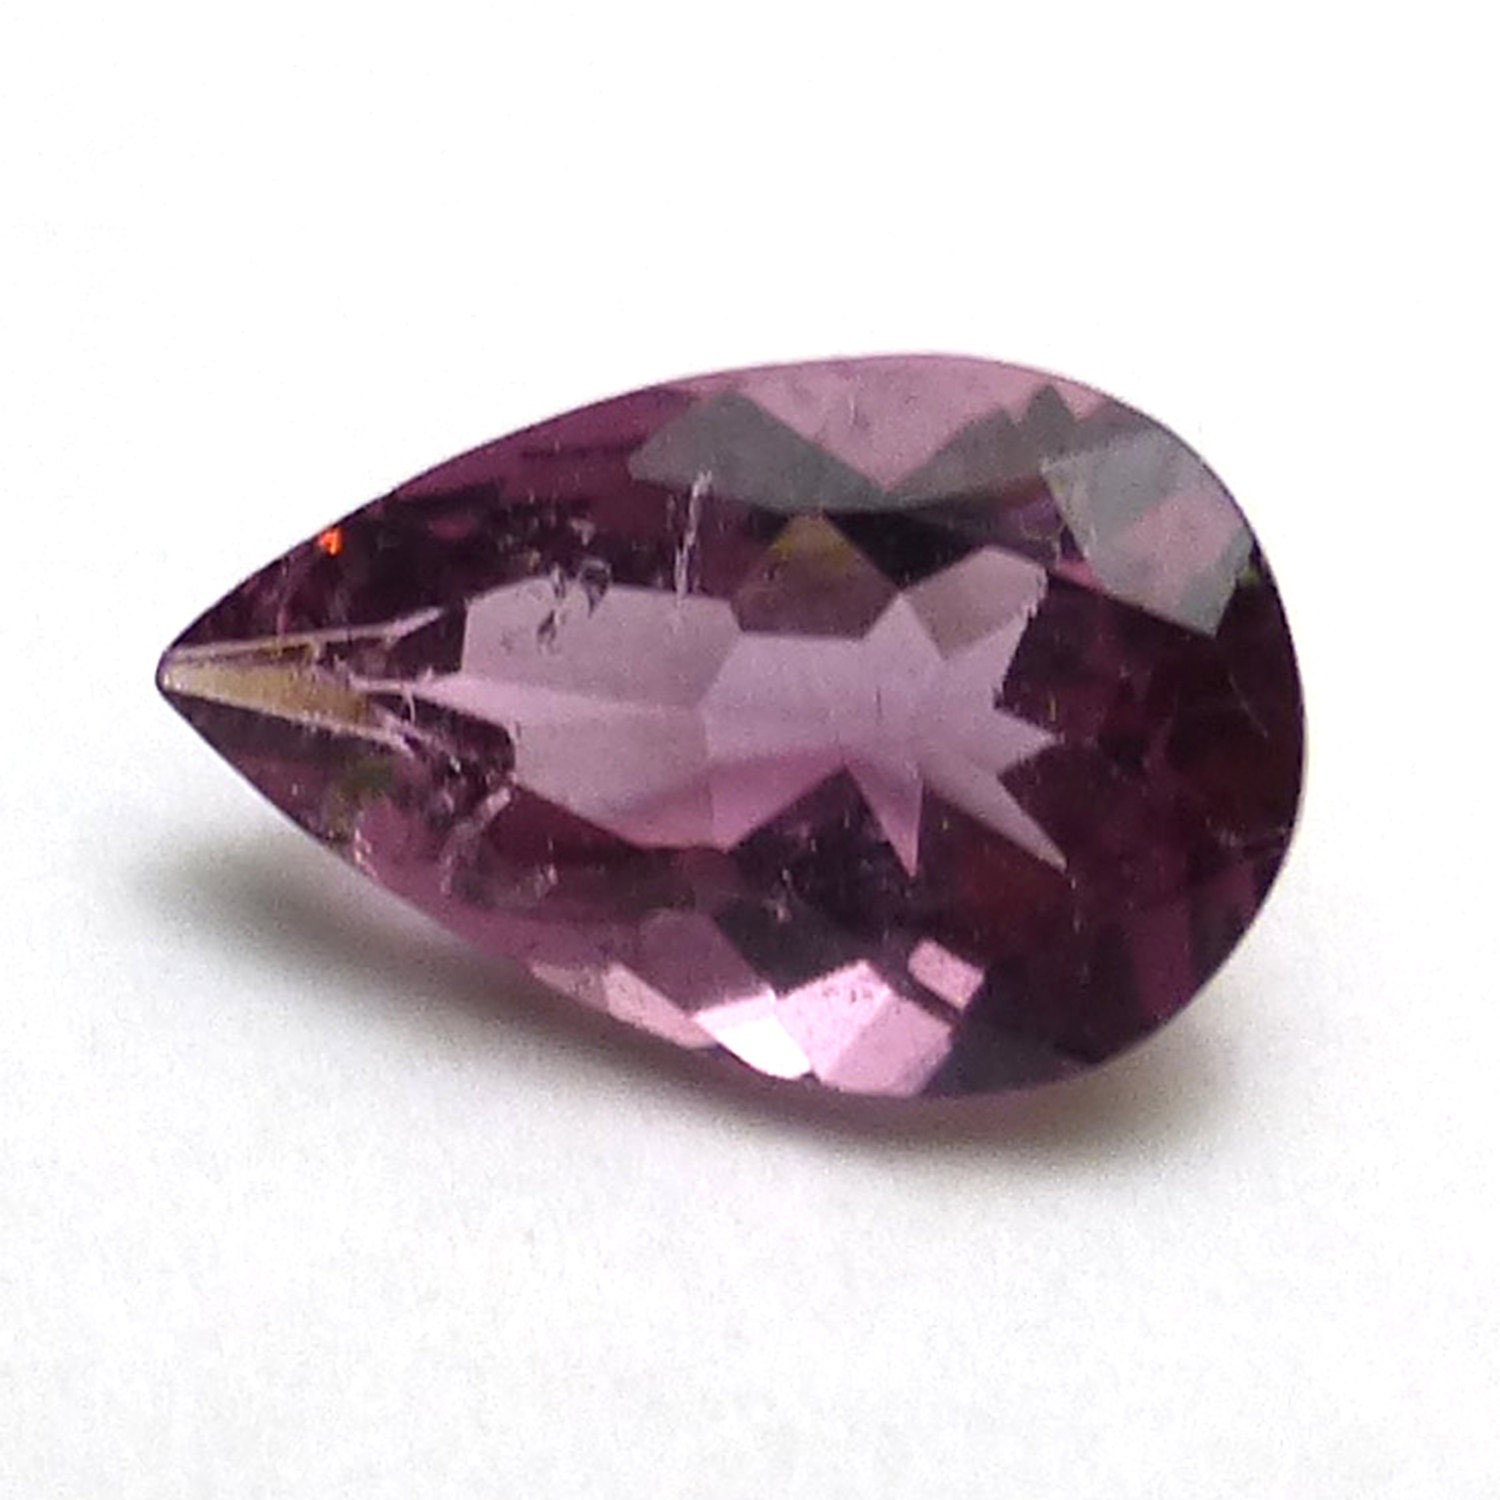 cut buying intricate society guide color amethyst gemstone igs international article gem purple